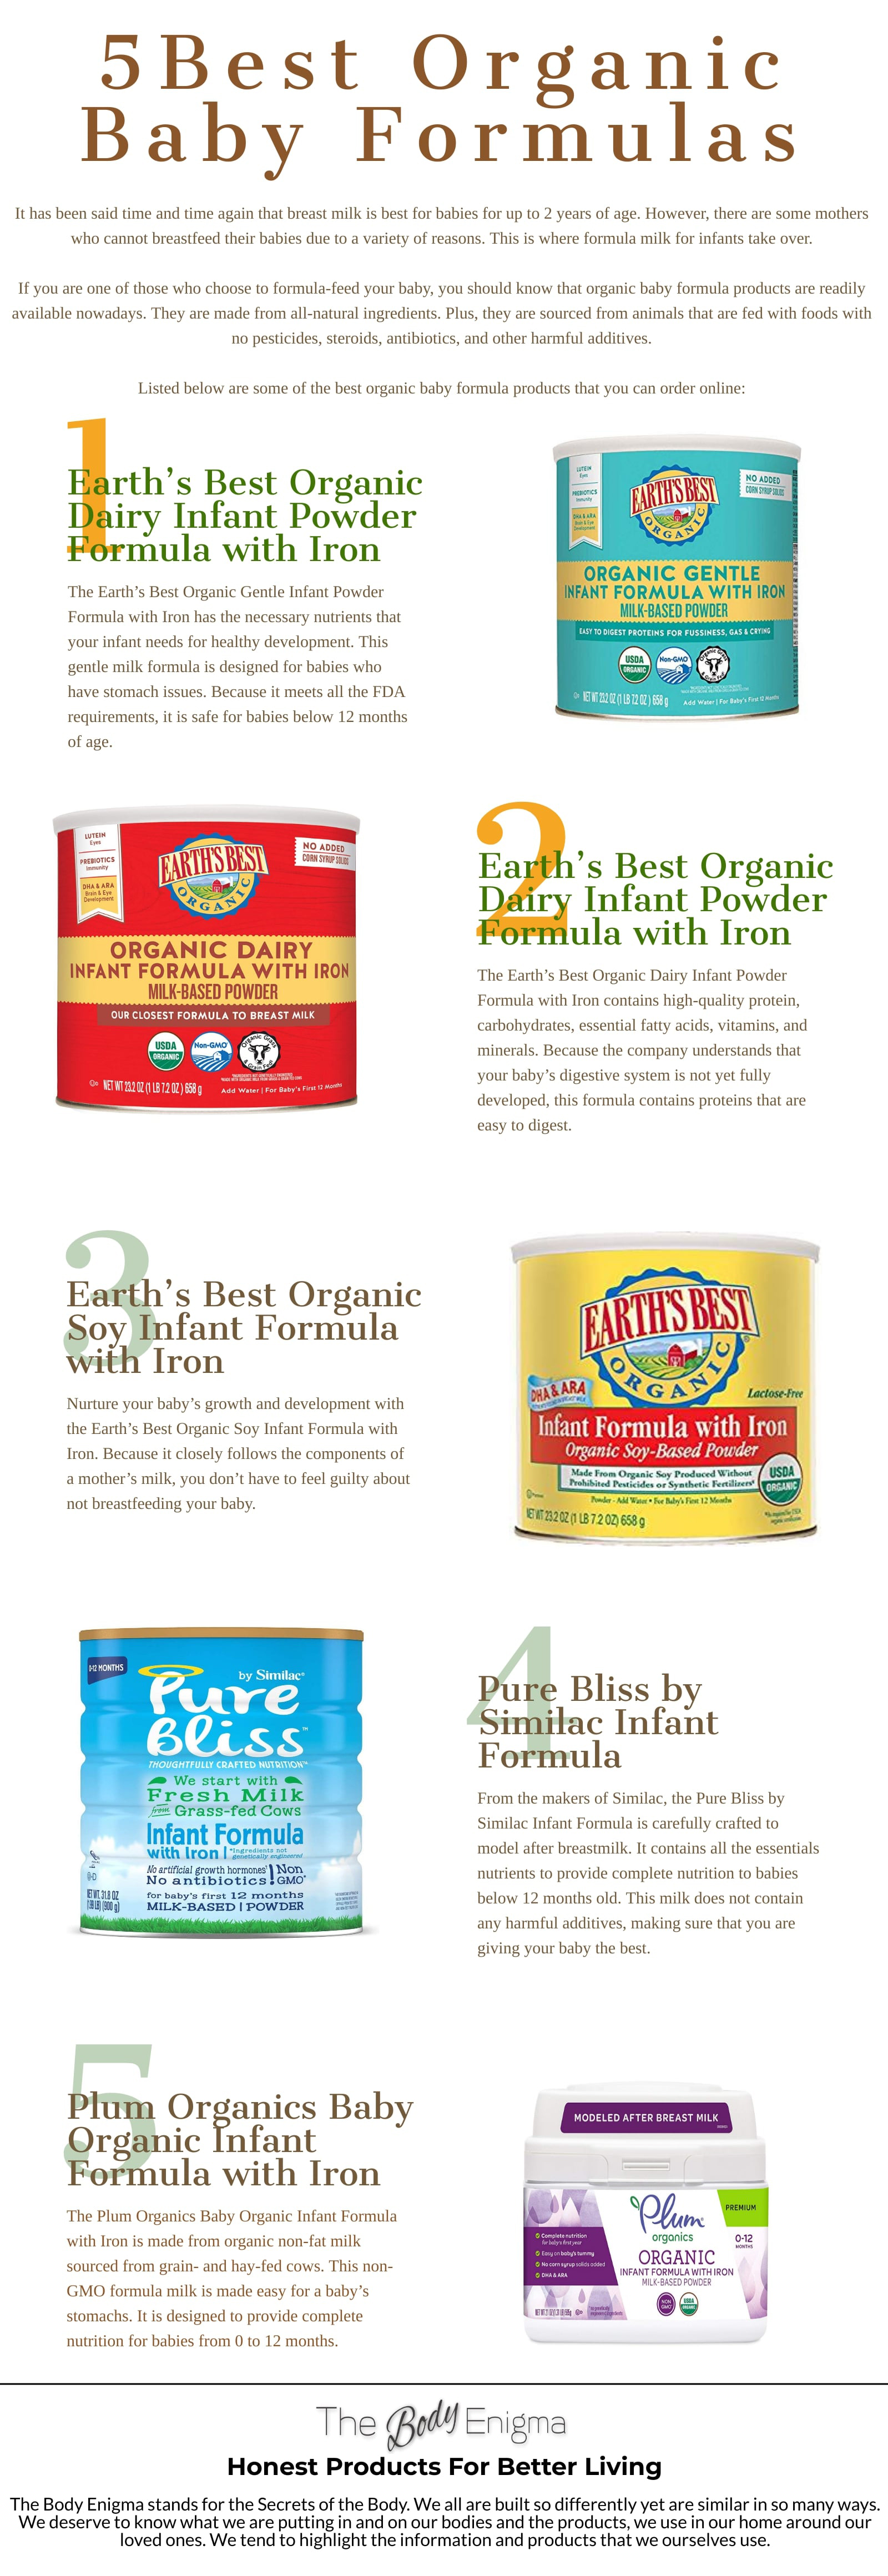 5 Organic Baby Formulas for Infants in 2020 [Infographic]